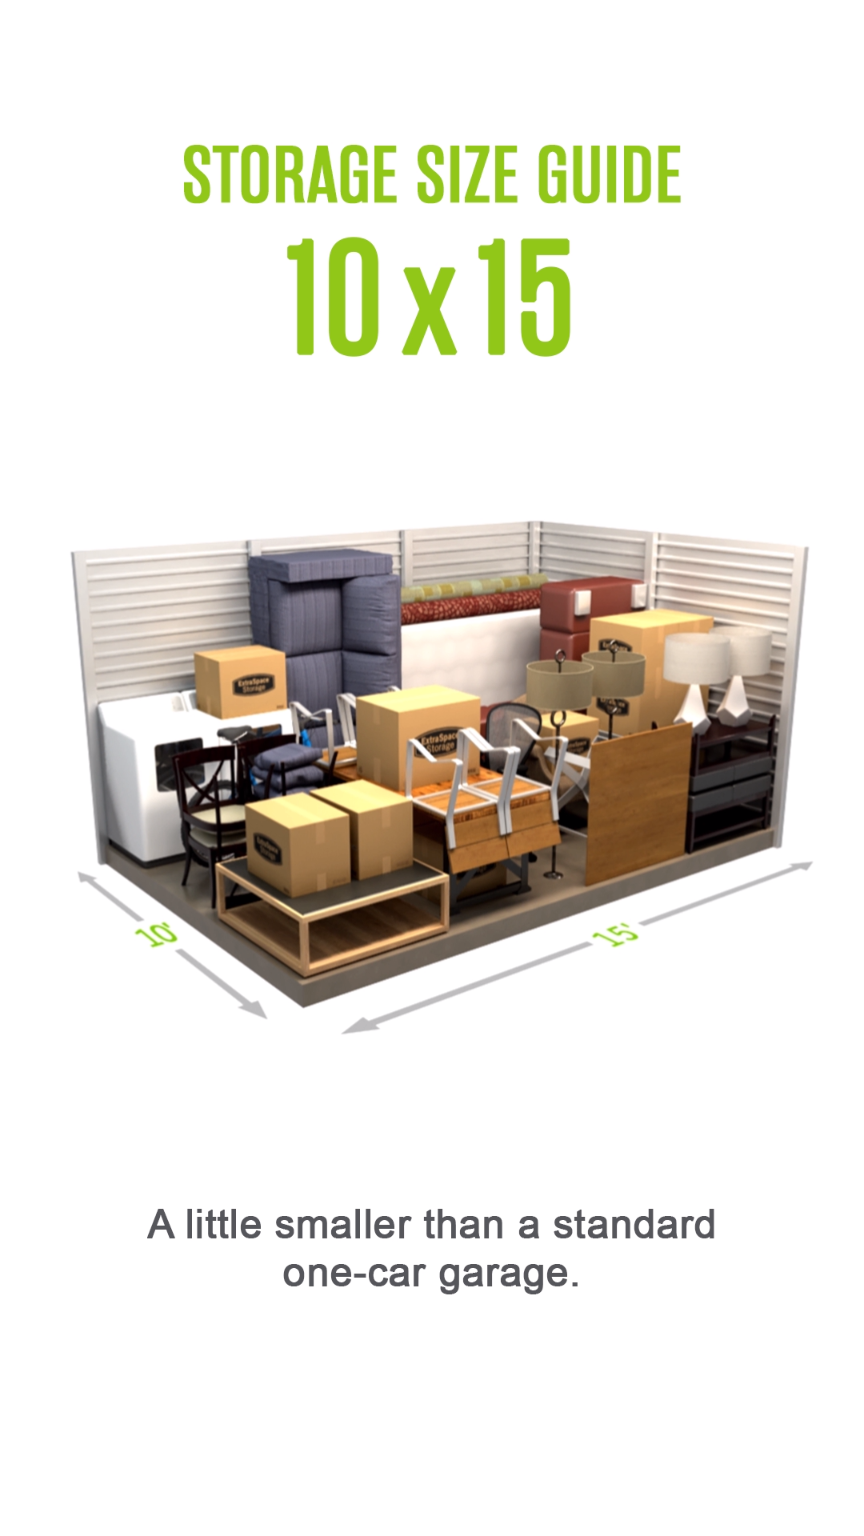 Self Storage Size Guide For A 10x15 Storage Unit A Little Smaller Than A Standard One Car Garage S Video Storage Unit Organization Self Storage Units Self Storage